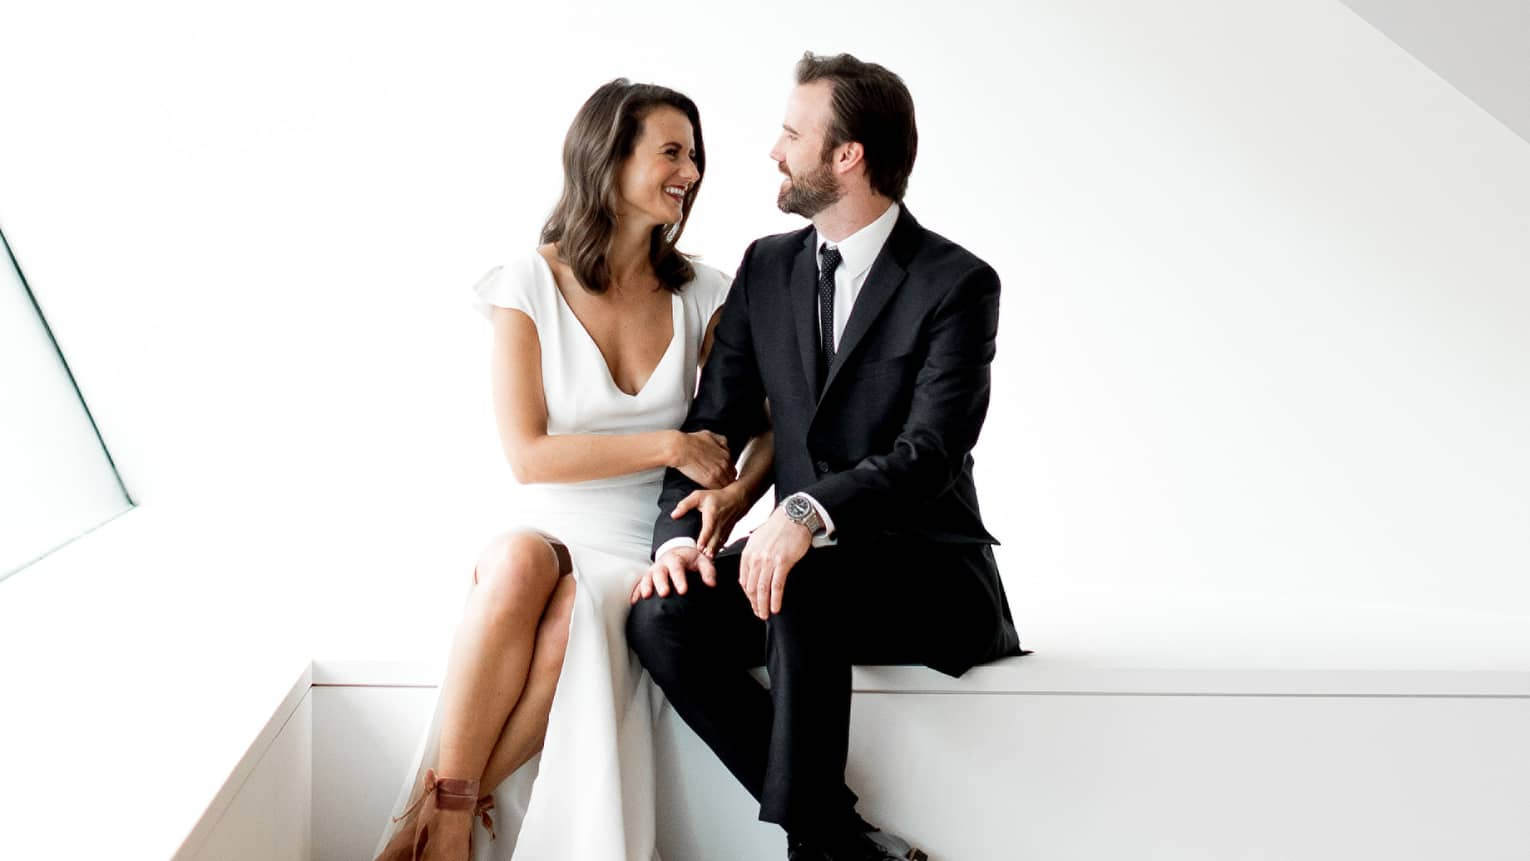 Bride and groom sit on ledge in bright, modern white room